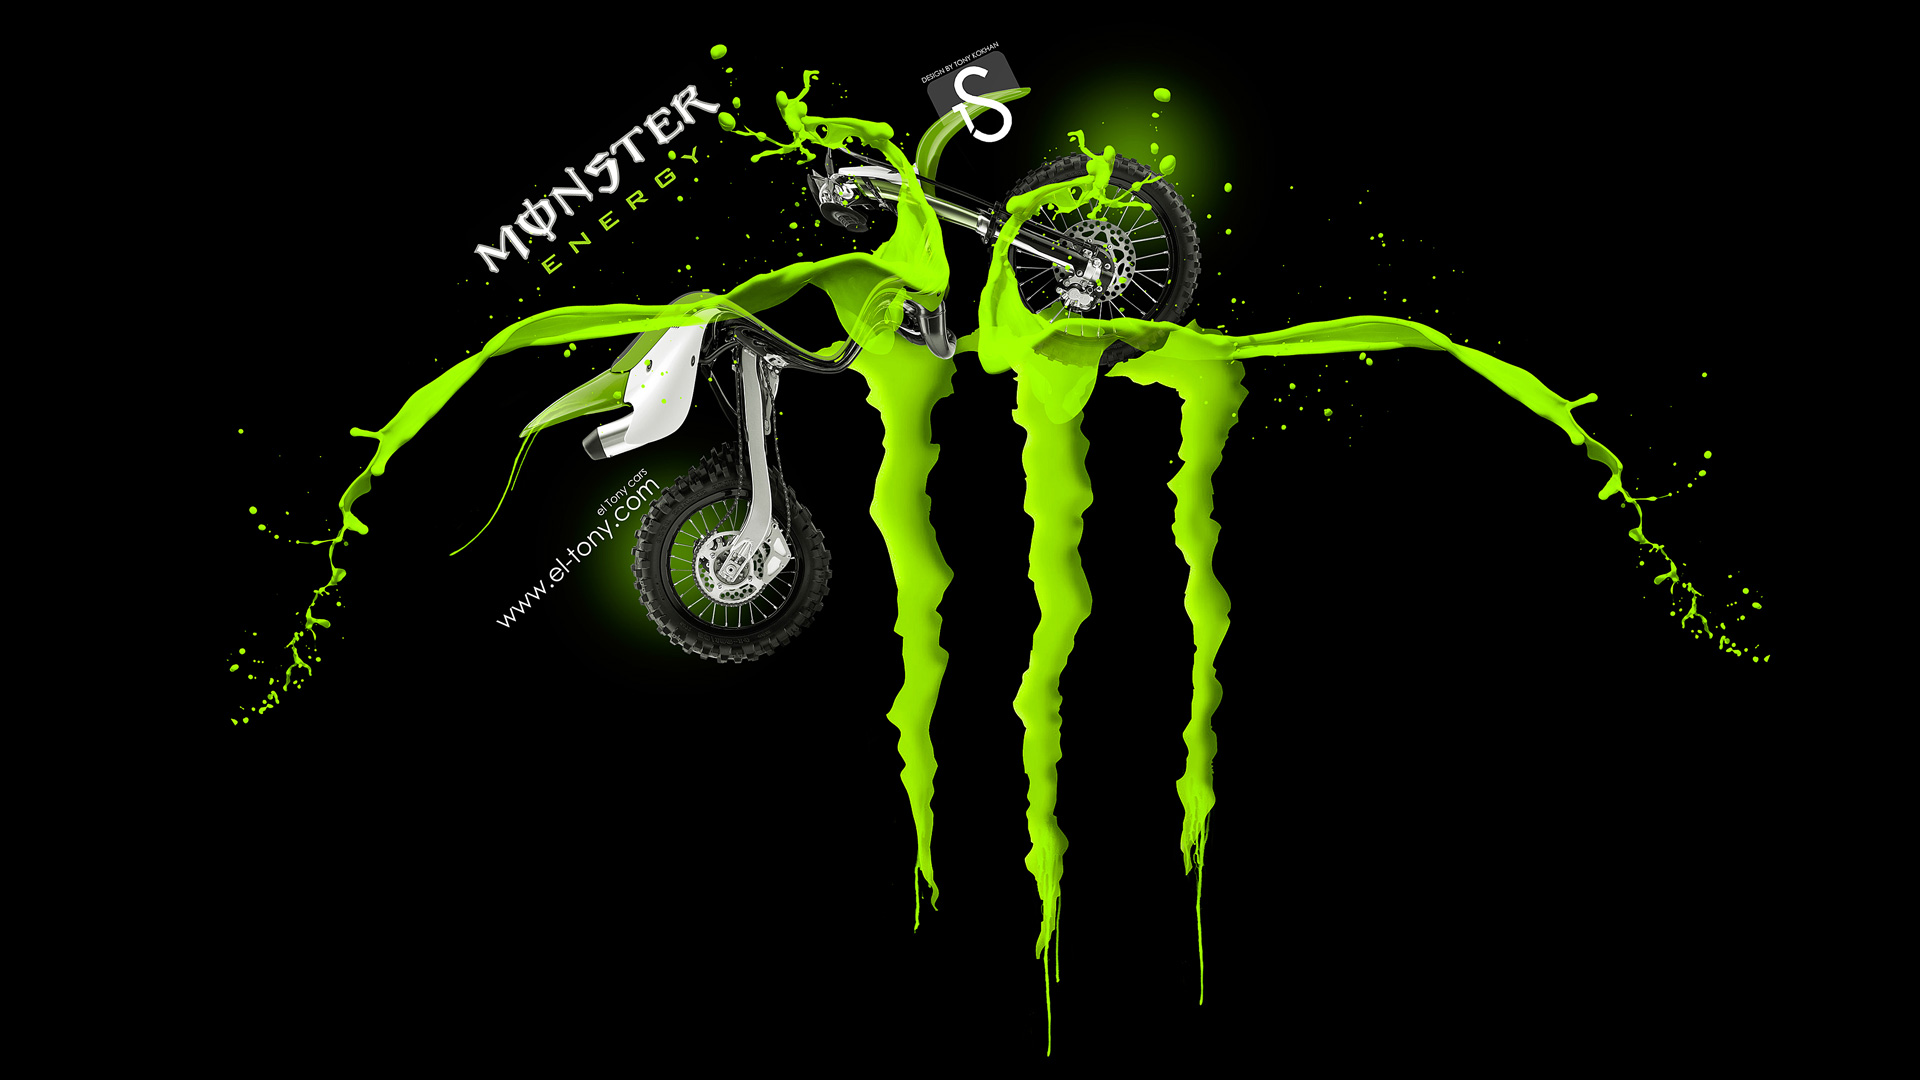 Genial Monster Energy Logo Acid Green Fantasy Kawasaki Motocross